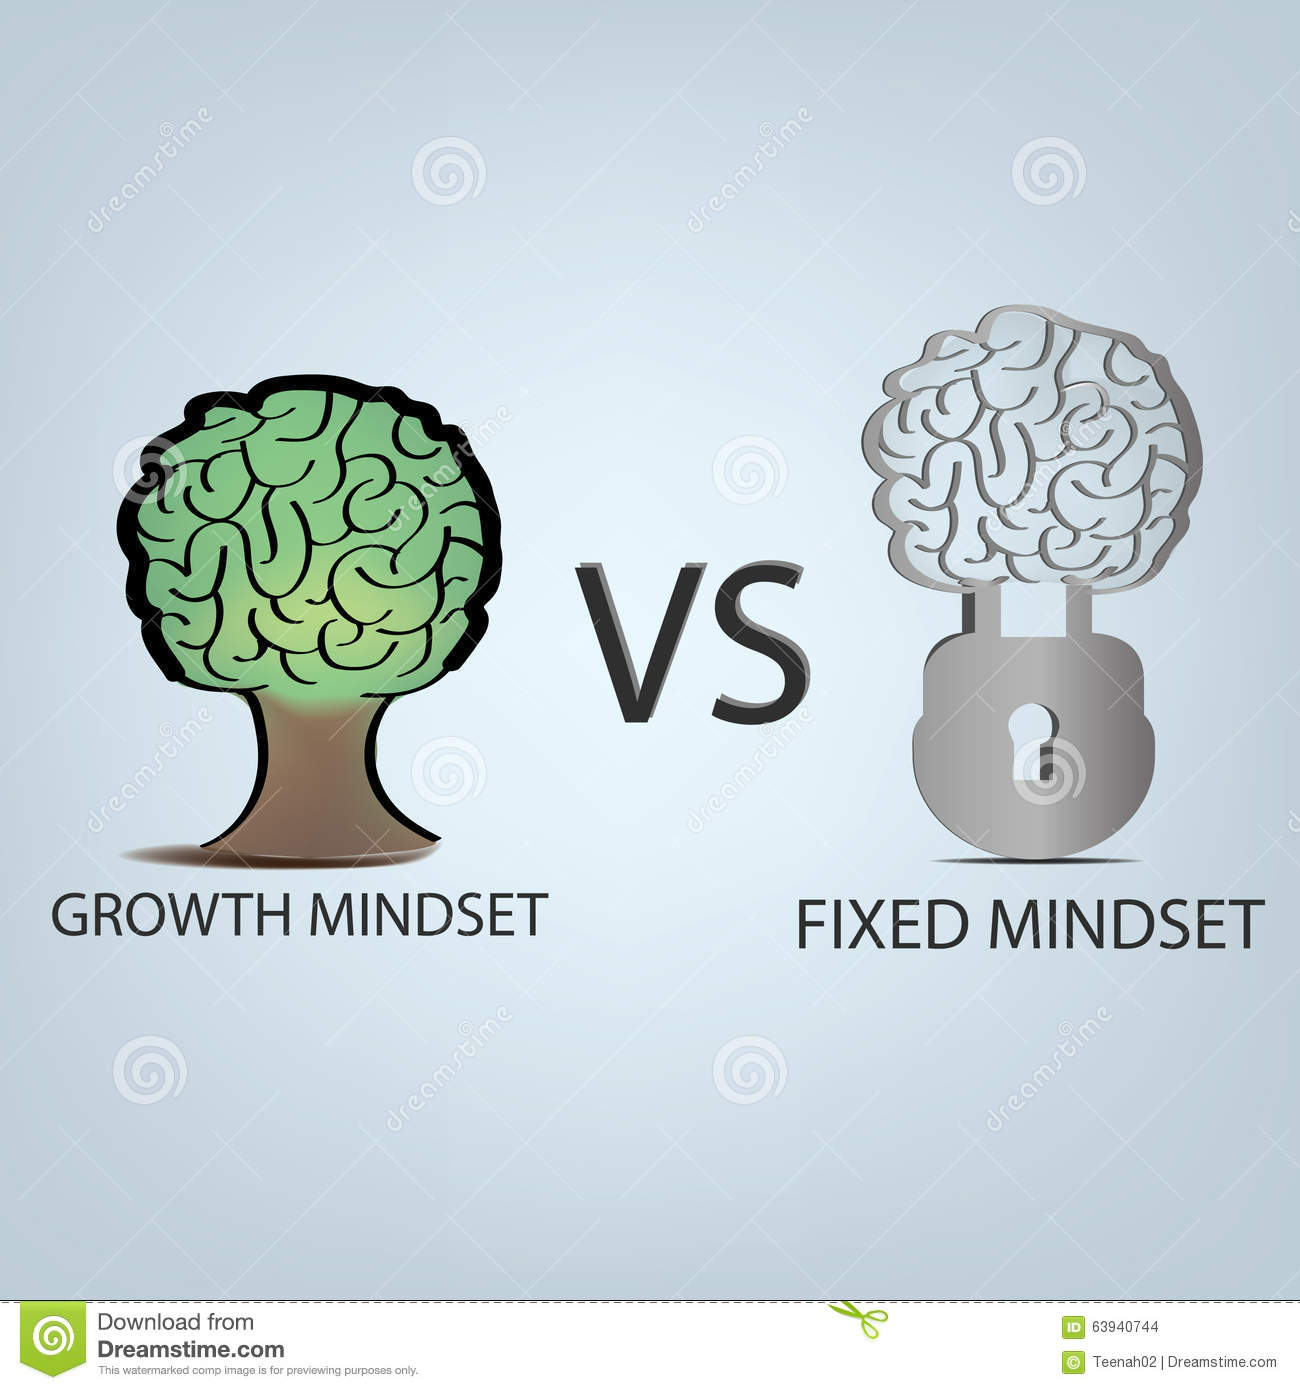 growth vs fixed mindset essay Free essay: mindset ivy bridge jami s  essay about basketball and growth mindset 718 words  people with a fixed mindset thrive only when things are.